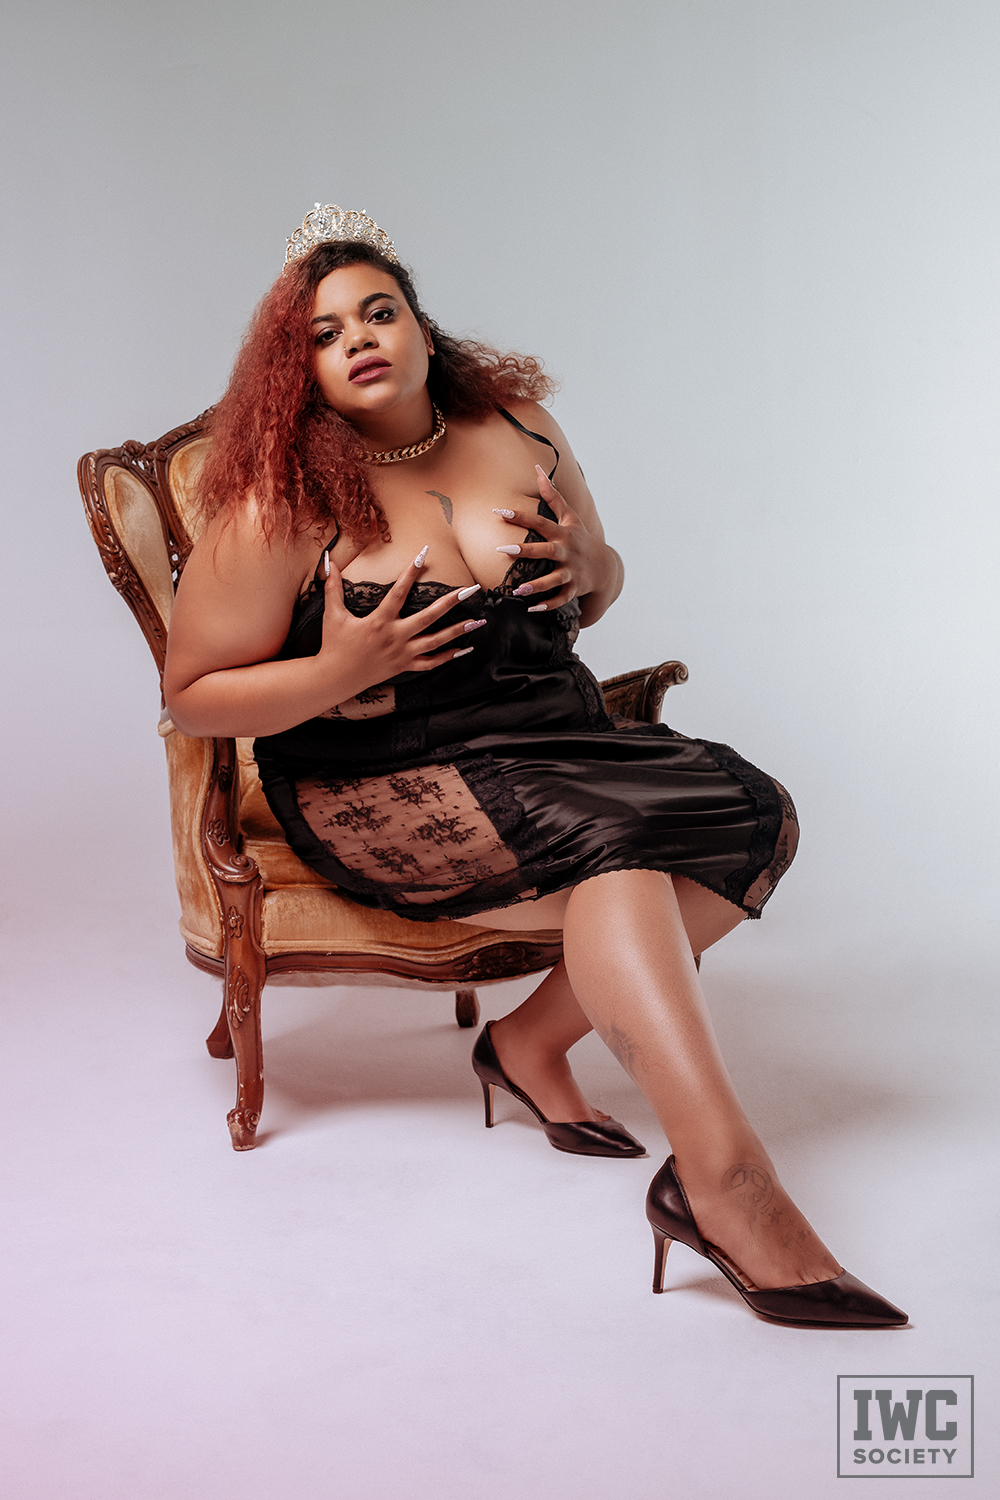 black dominatrix Ms Charmness wearing a tiara and grabbing her cleavage in a satin nightgown